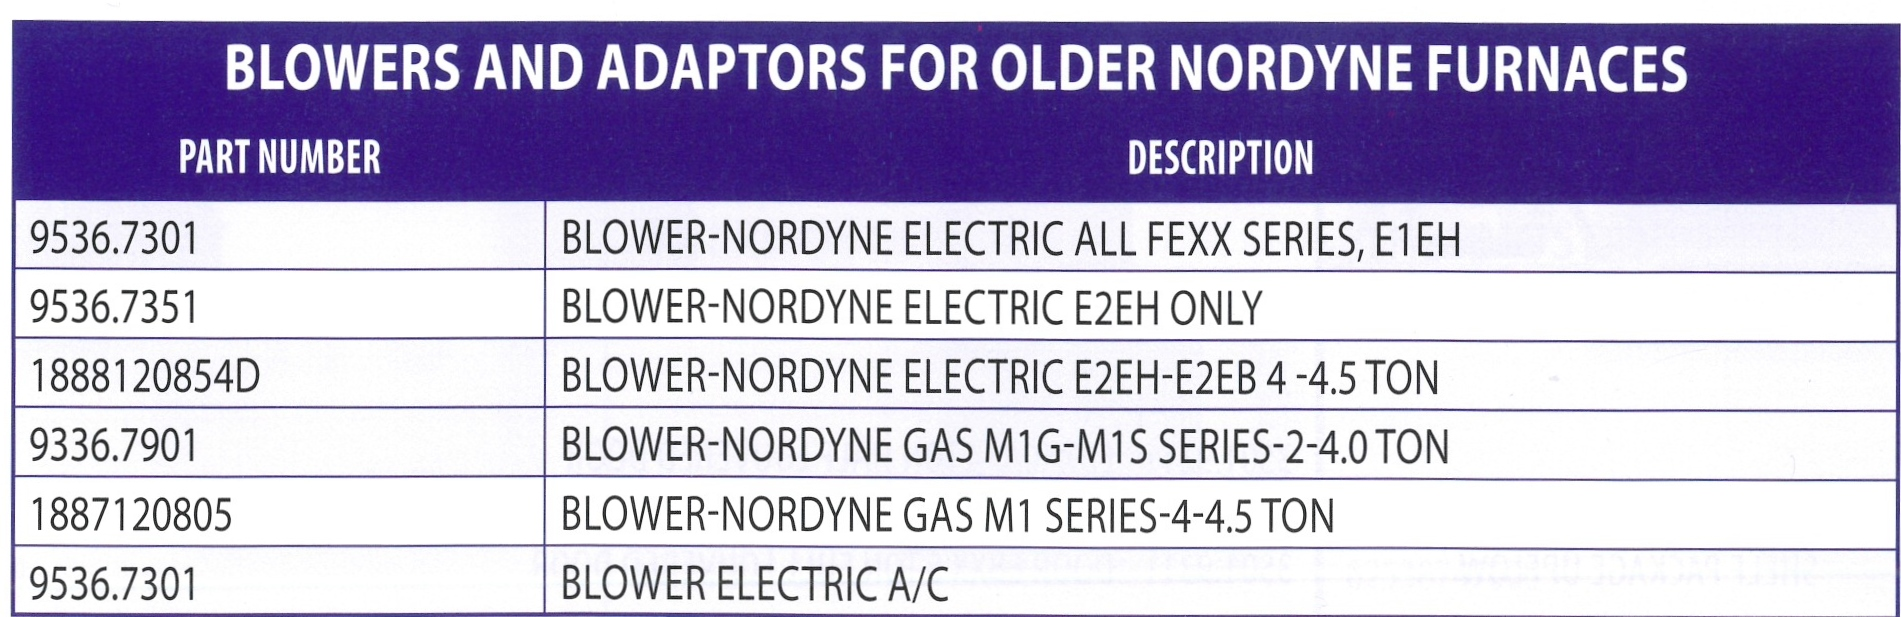 9536.7301-9536.7301 BLOWERS AND ADAPTORS FOR OLDER NORDYNE FURNACES